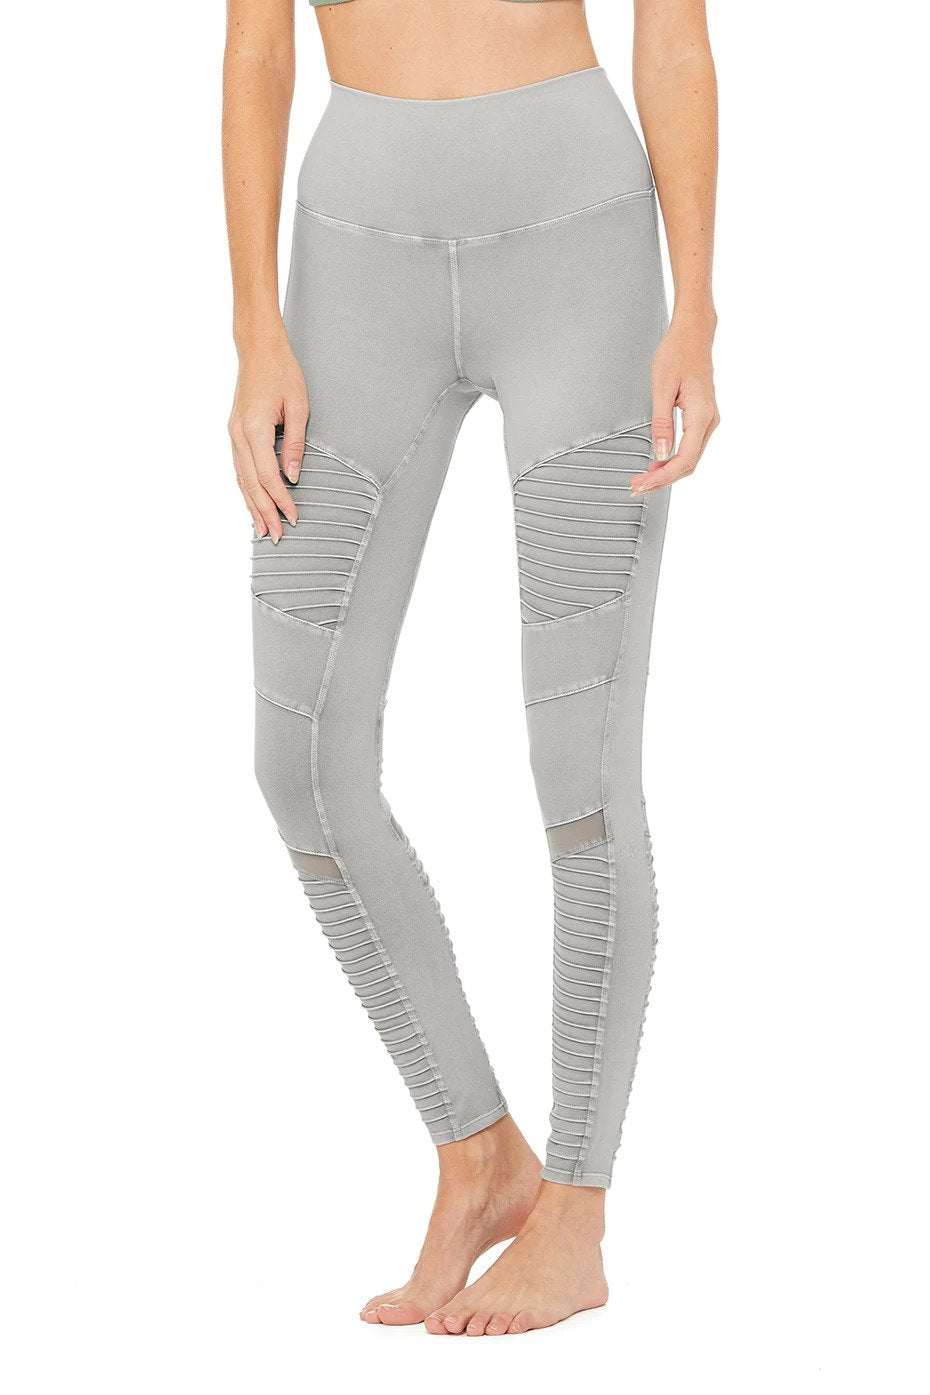 Alo Yoga XS High-Waist Washed Moto Legging - Lead Wash